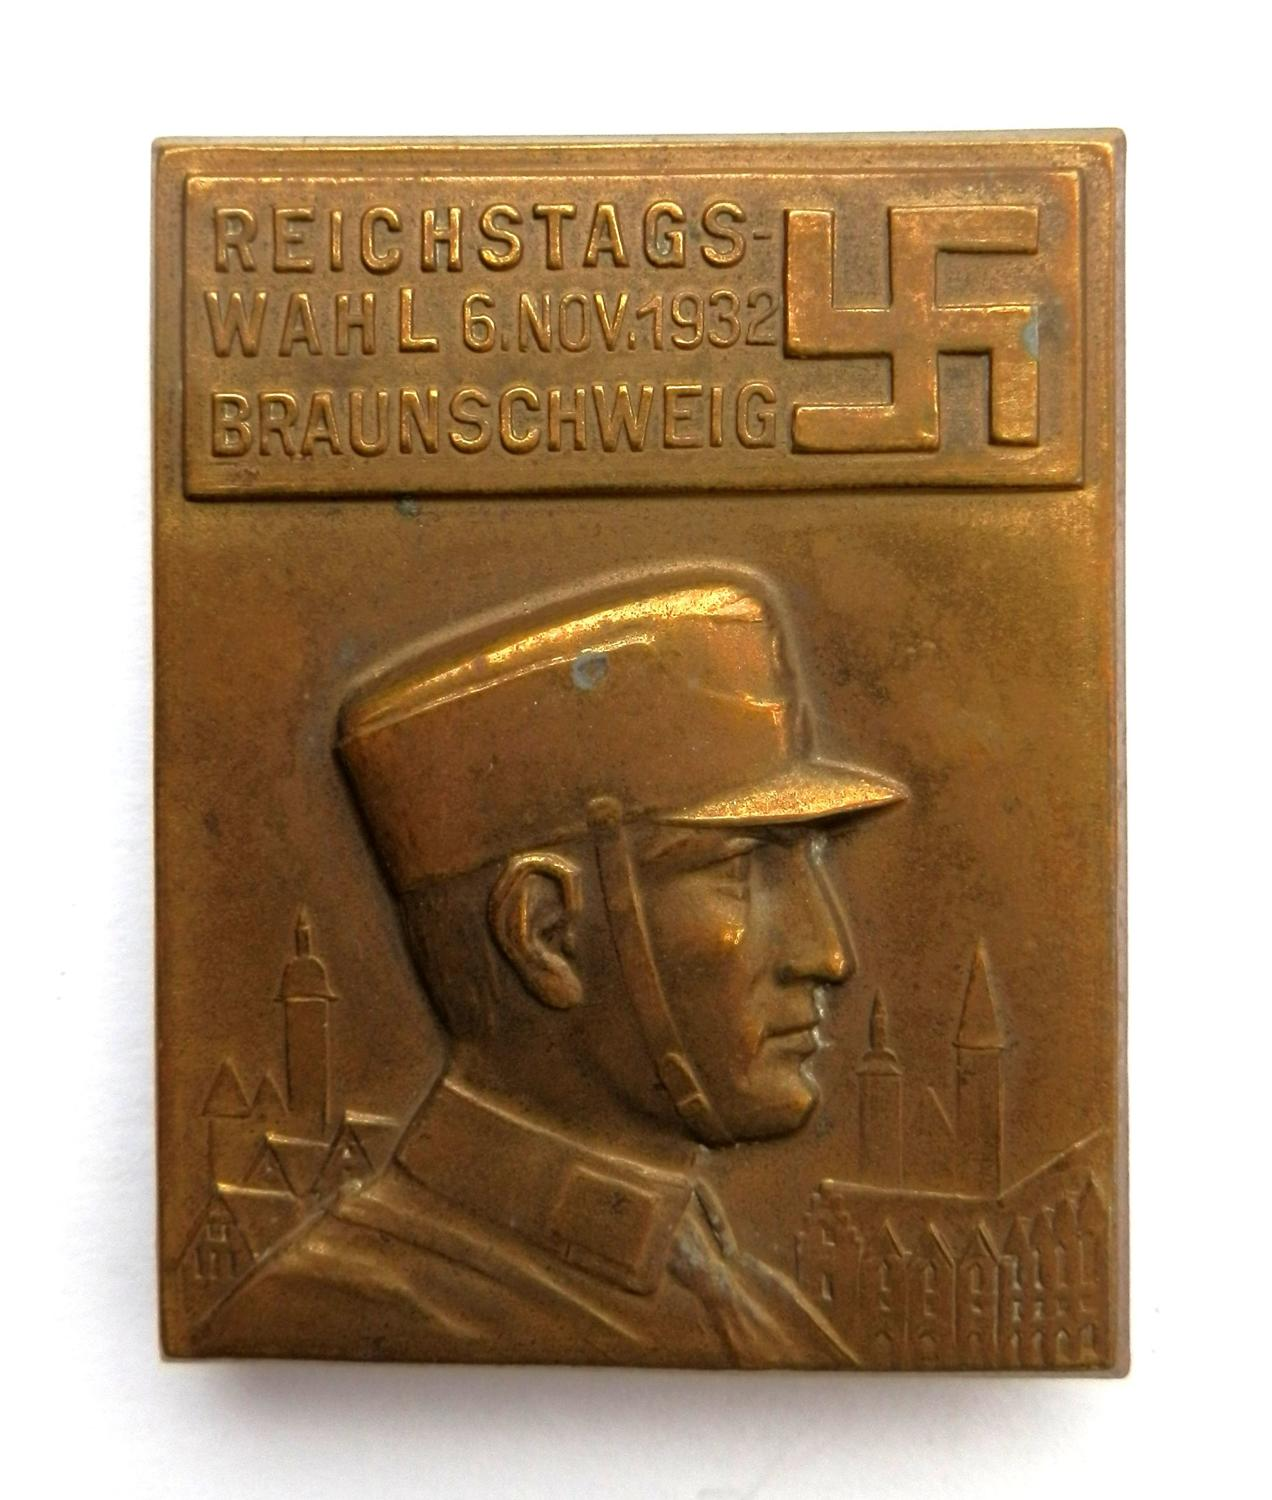 Reichstags Wahl 6 Nov. 1932 Braunshweig Badge.